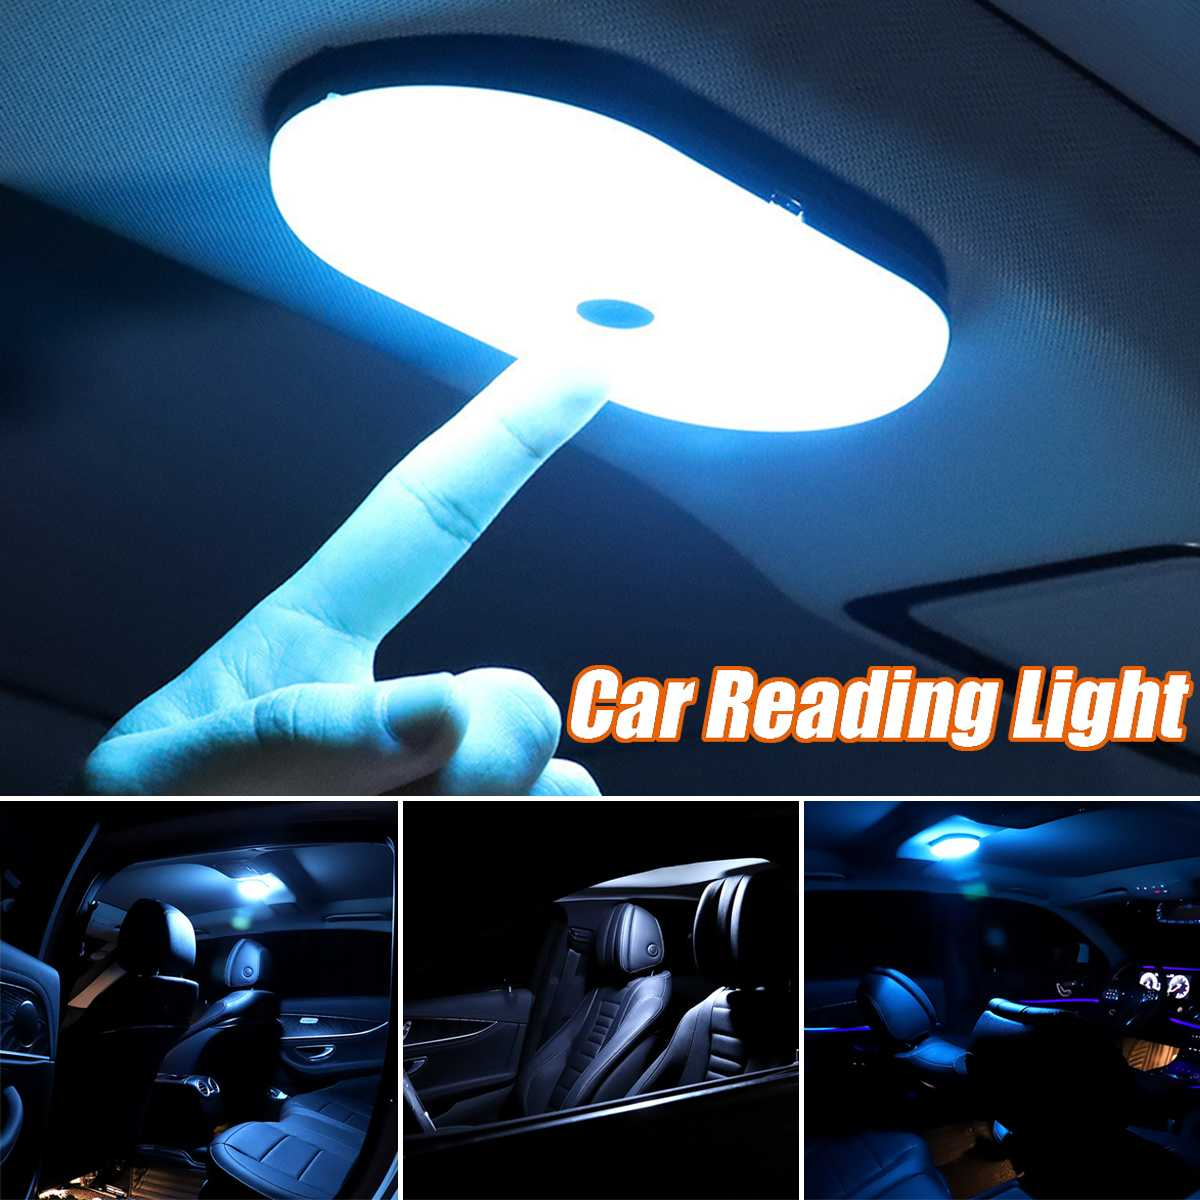 LED Automobile Car Interior Reading Light Dome 3 Light Color Changing USB Charging Roof Ceiling Magnet Lamp Night Light